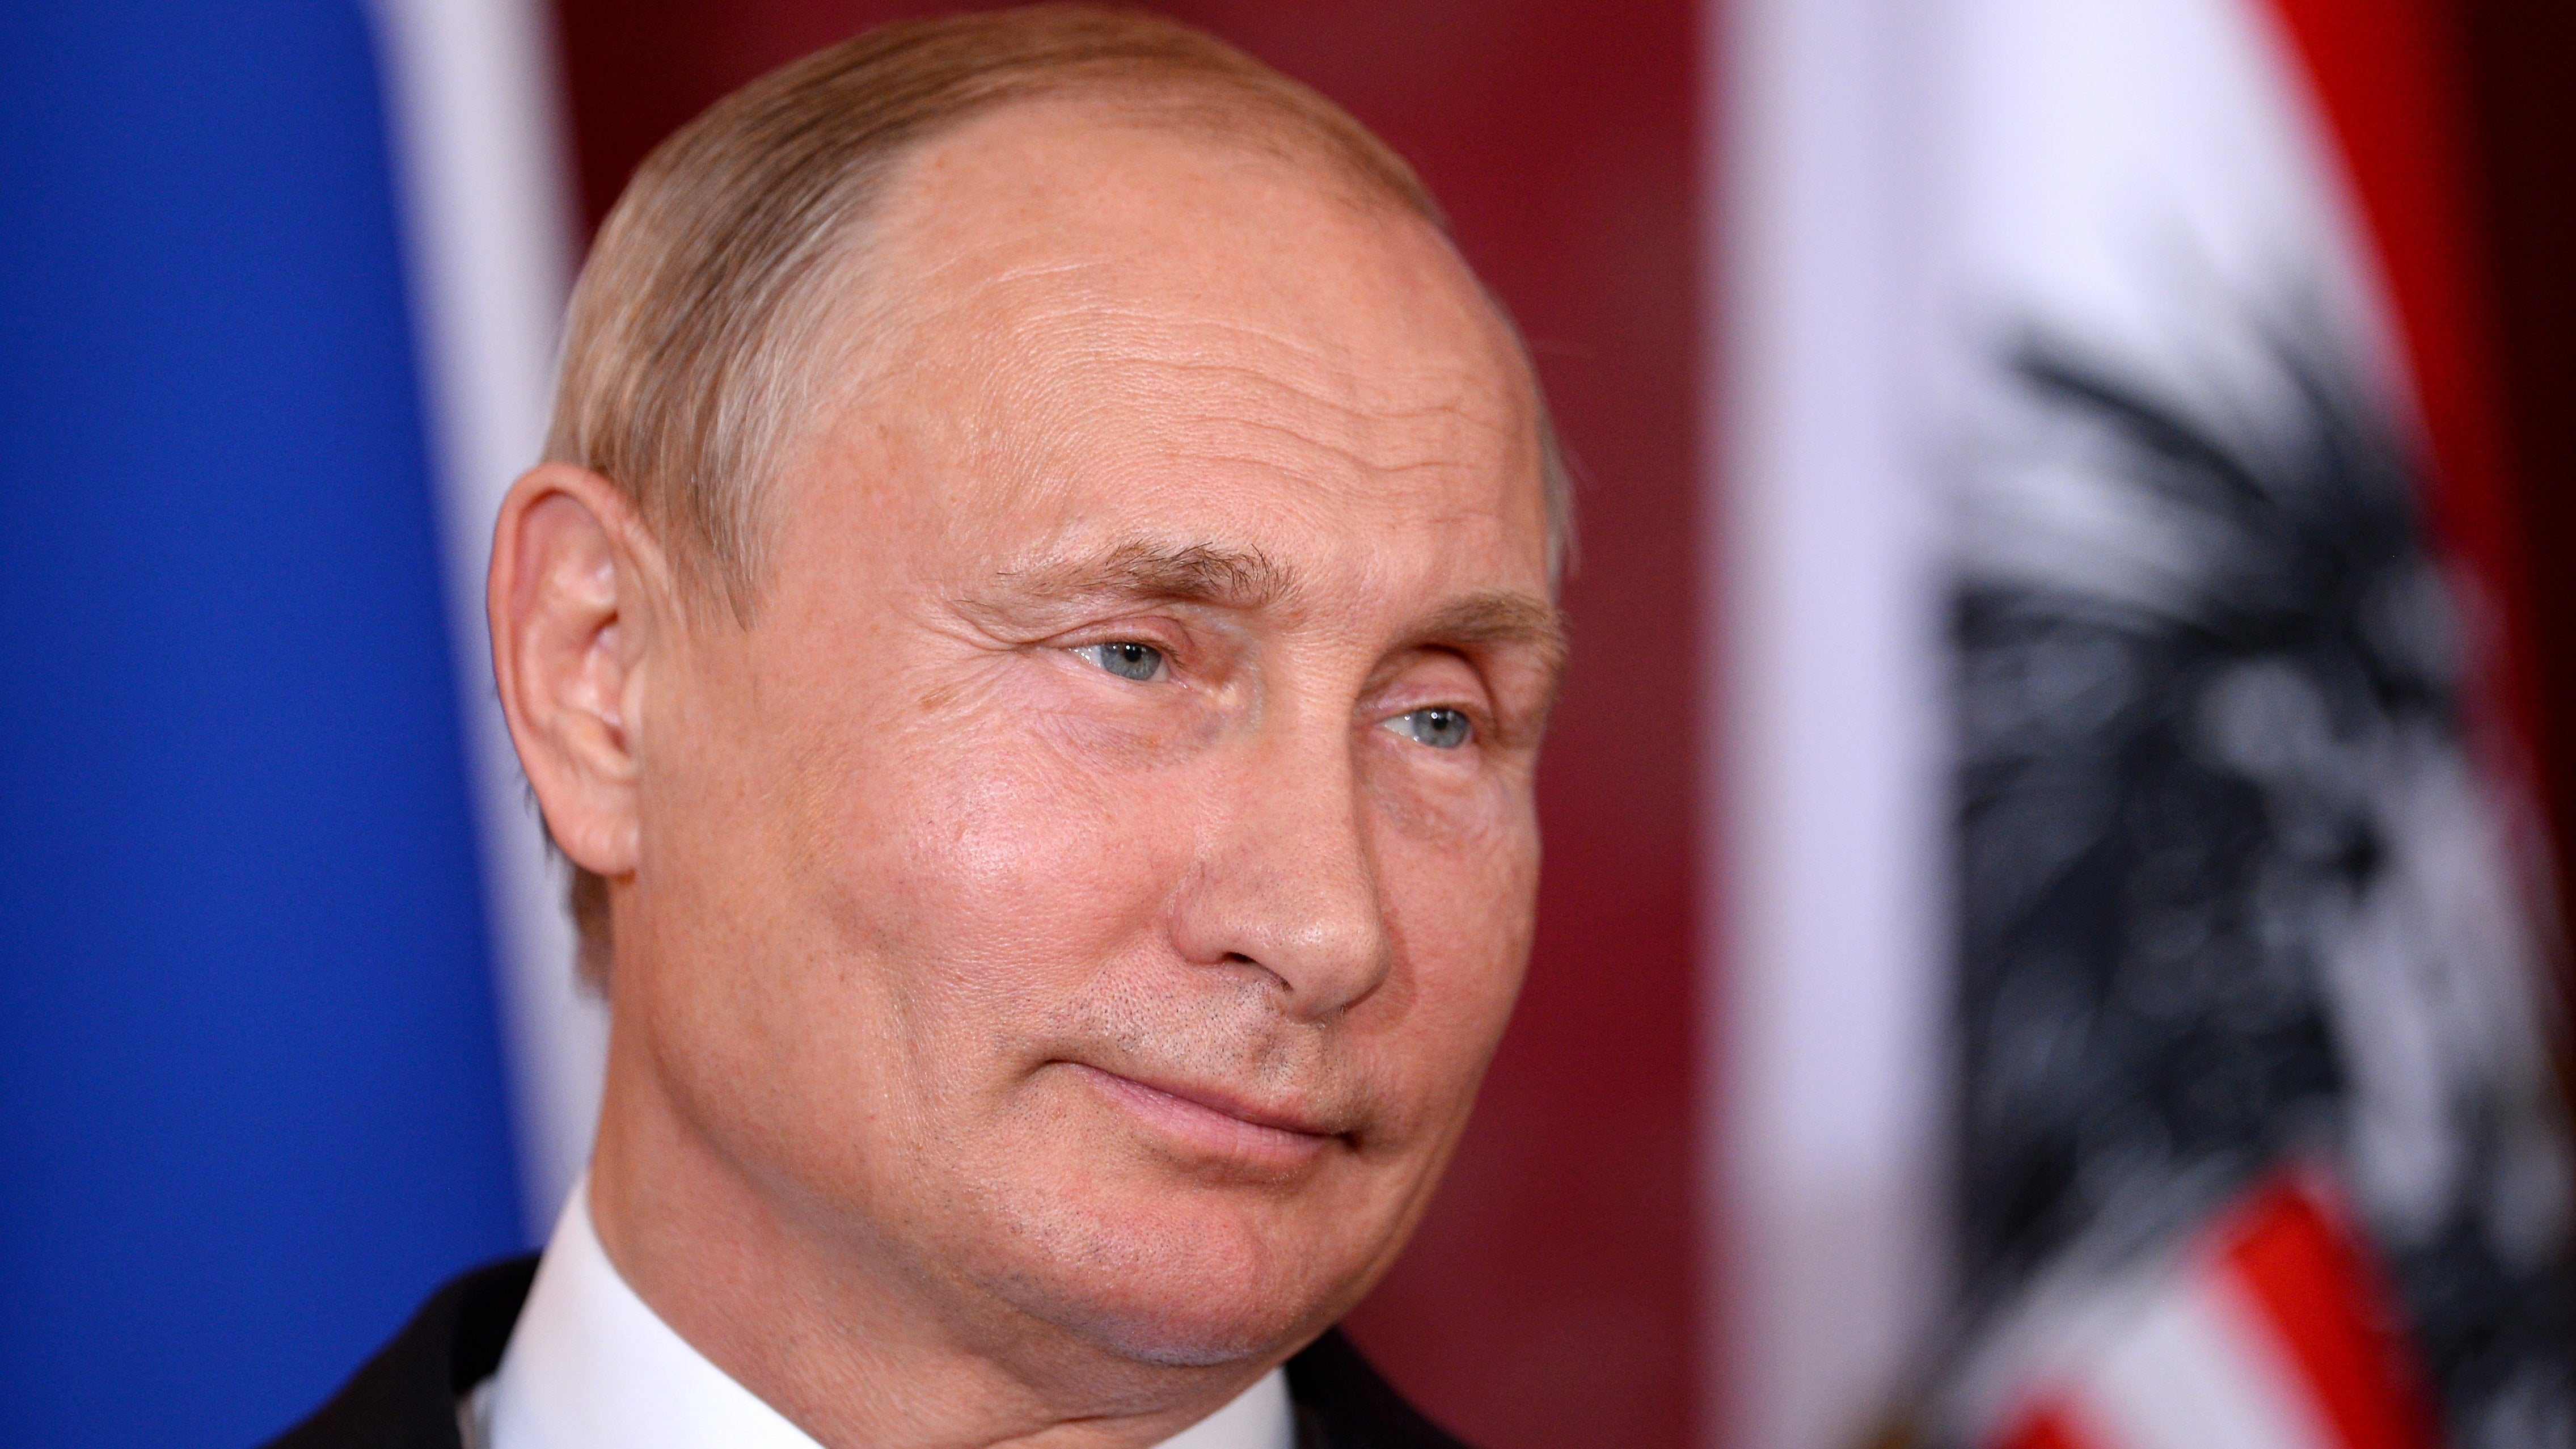 Russia To Test Whether Its Internet Can Be Disconnected From The Rest Of The World